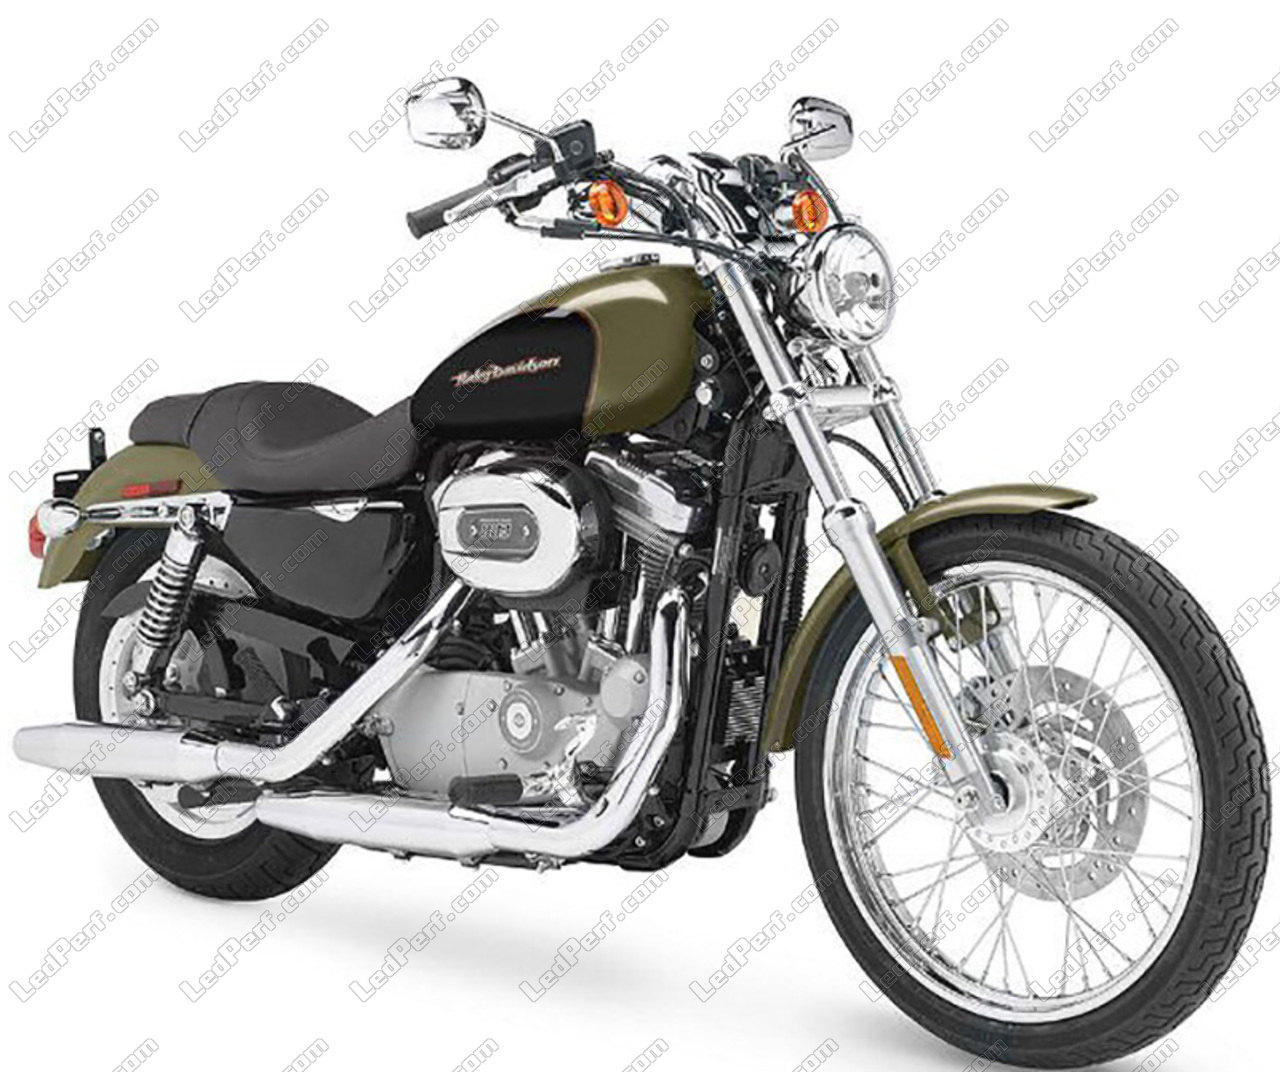 phare led rond pour harley davidson custom 883 garantie 5 ans. Black Bedroom Furniture Sets. Home Design Ideas